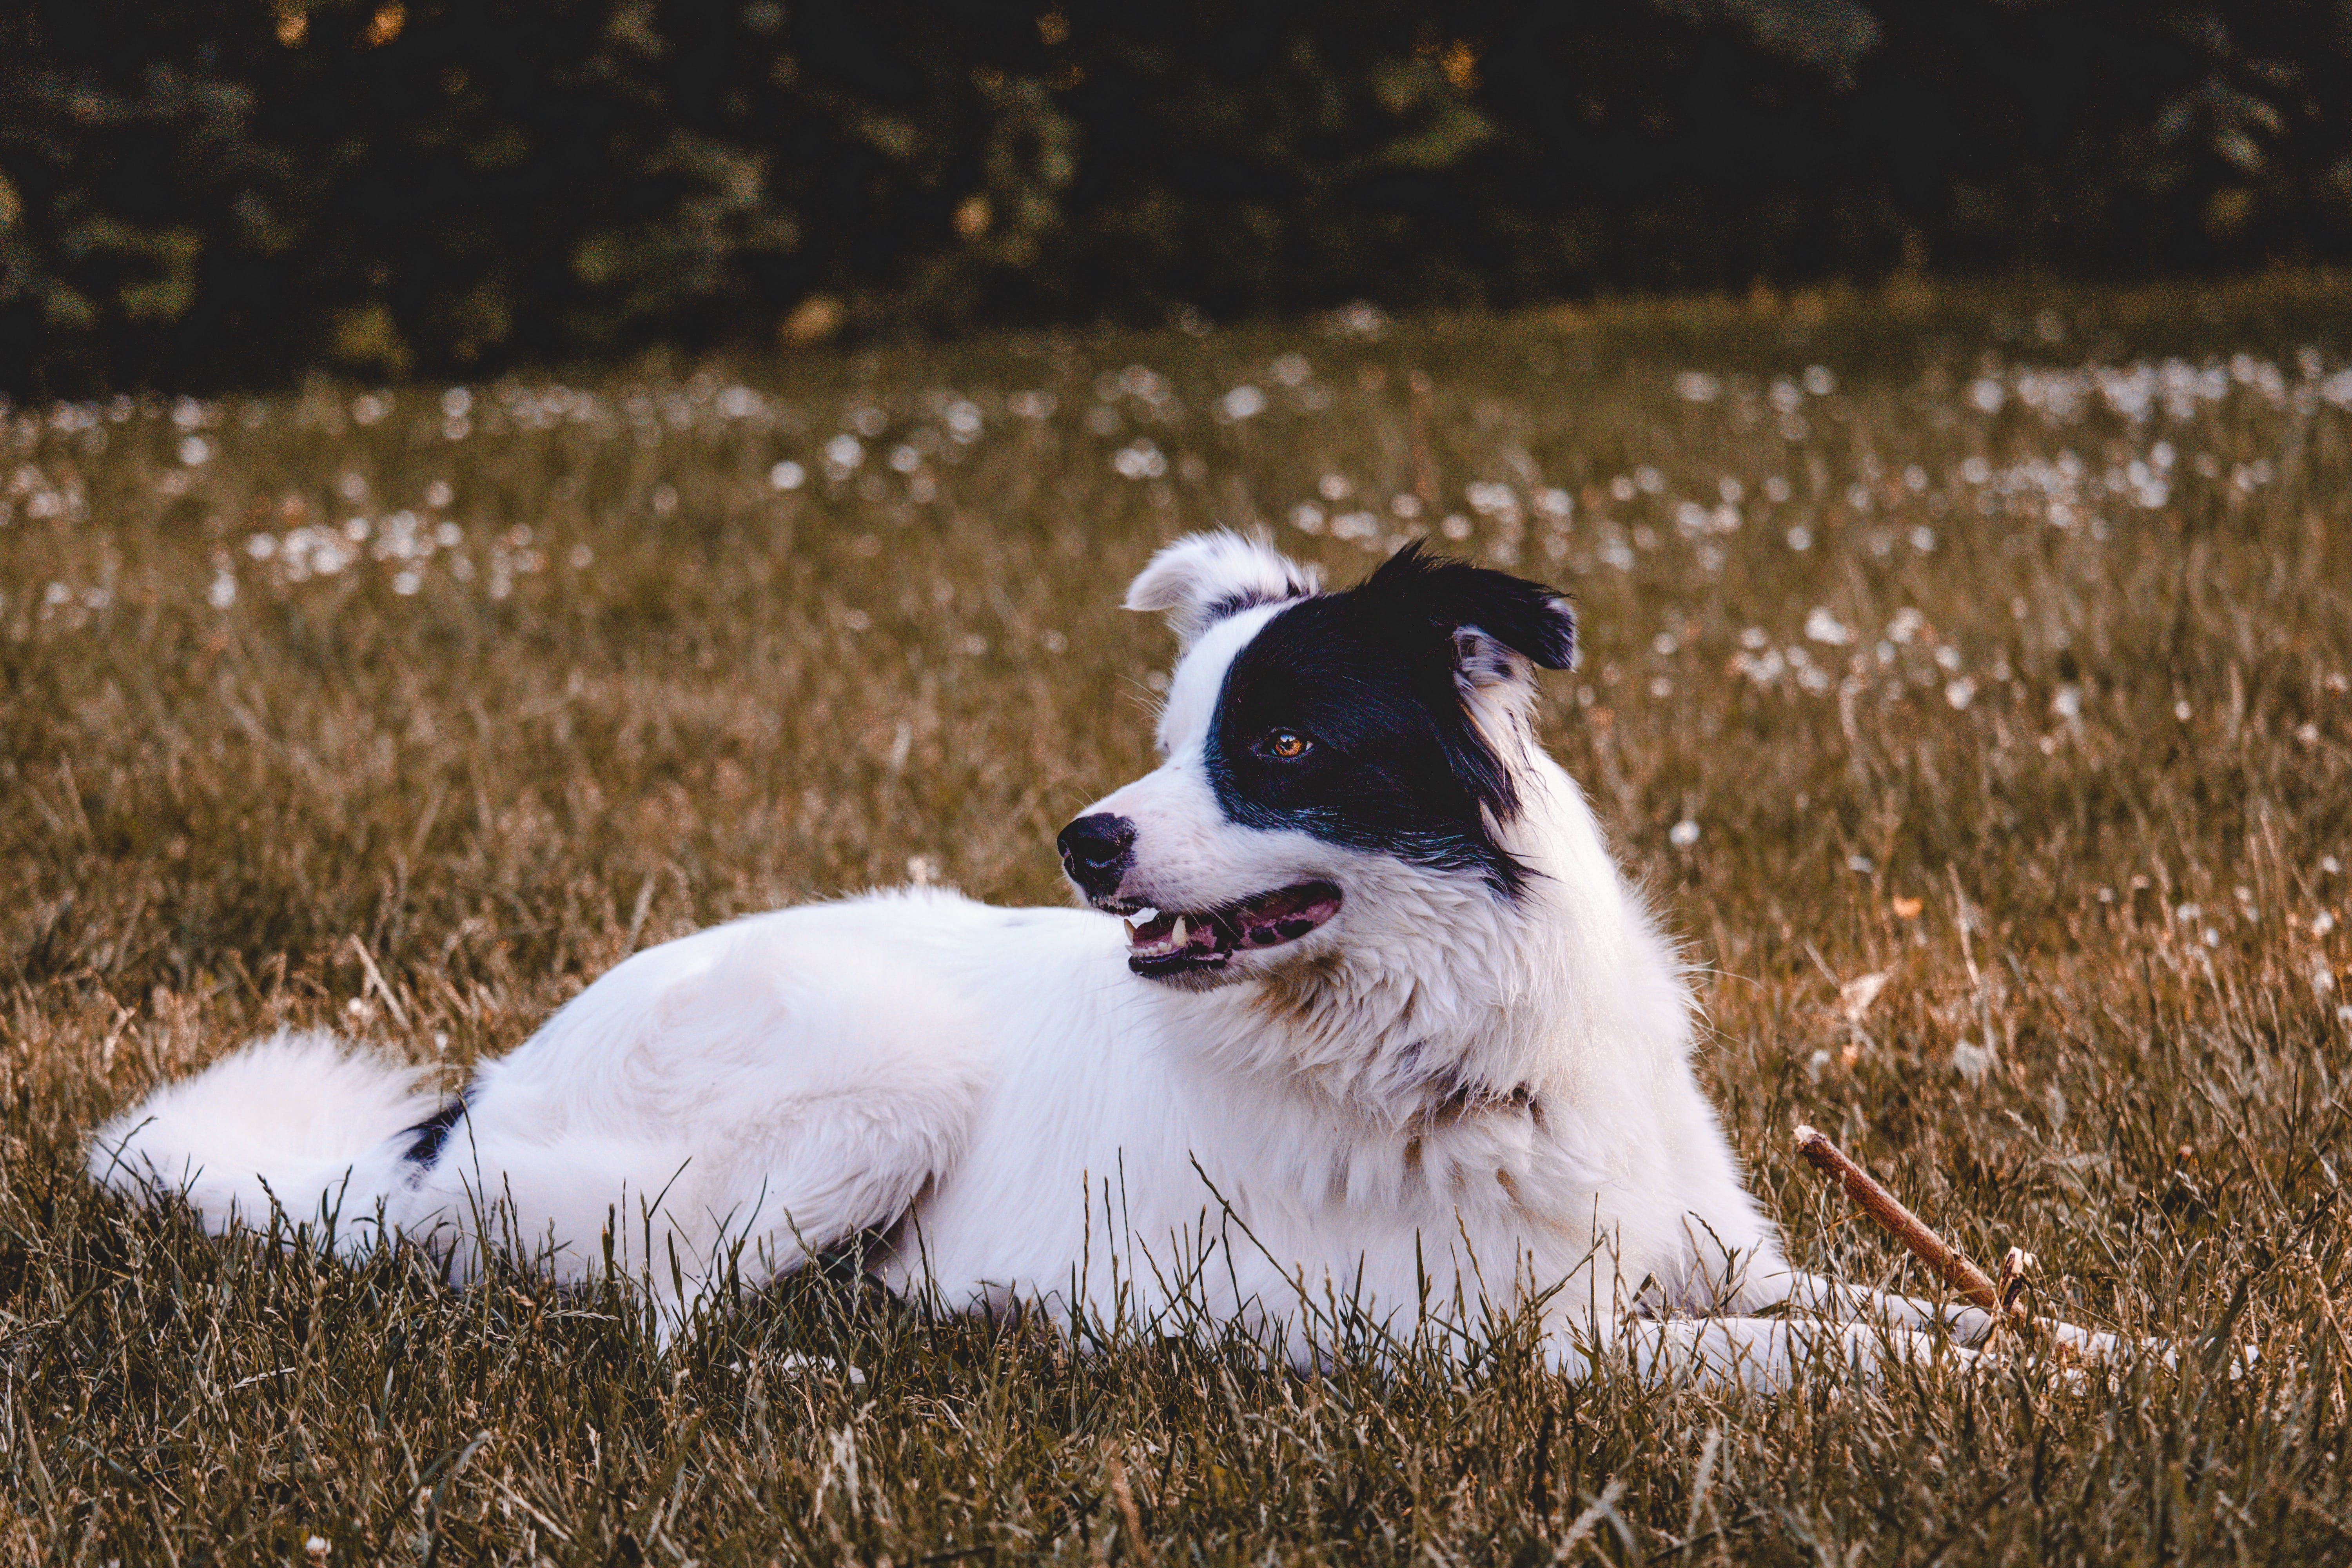 Black And White Dog On Grass Field